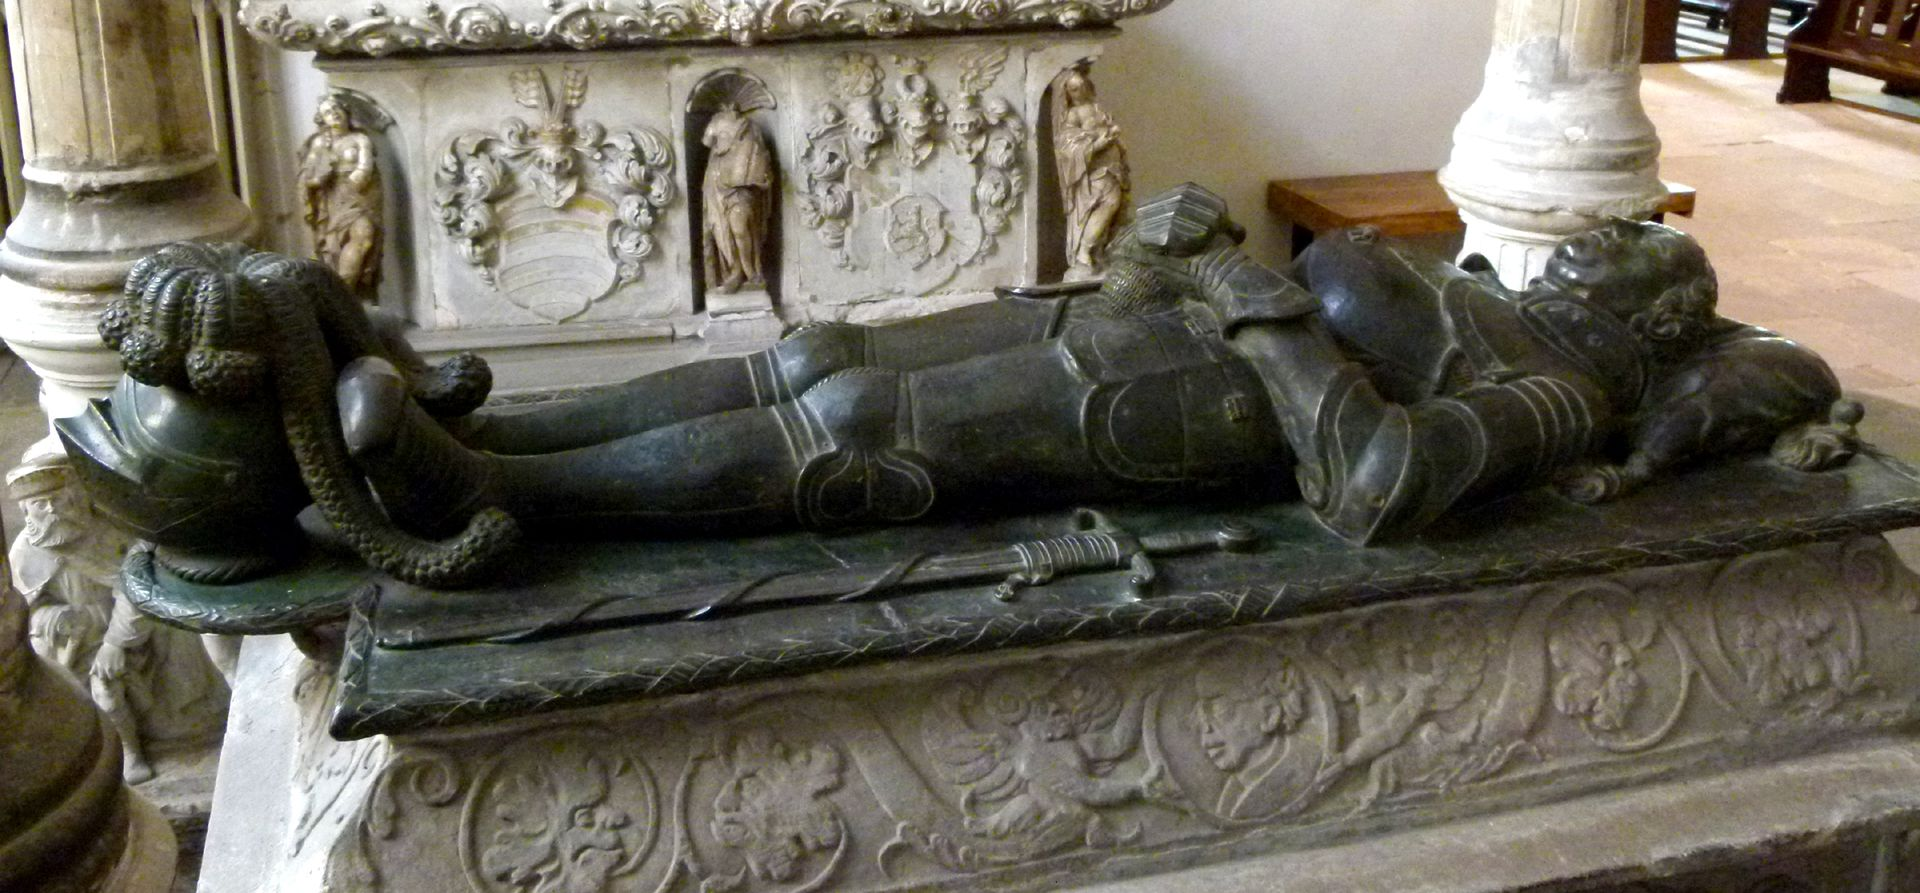 Tomb of Count Hoyer VI of Mansfeld-Vorderort (attribution) Lying figure